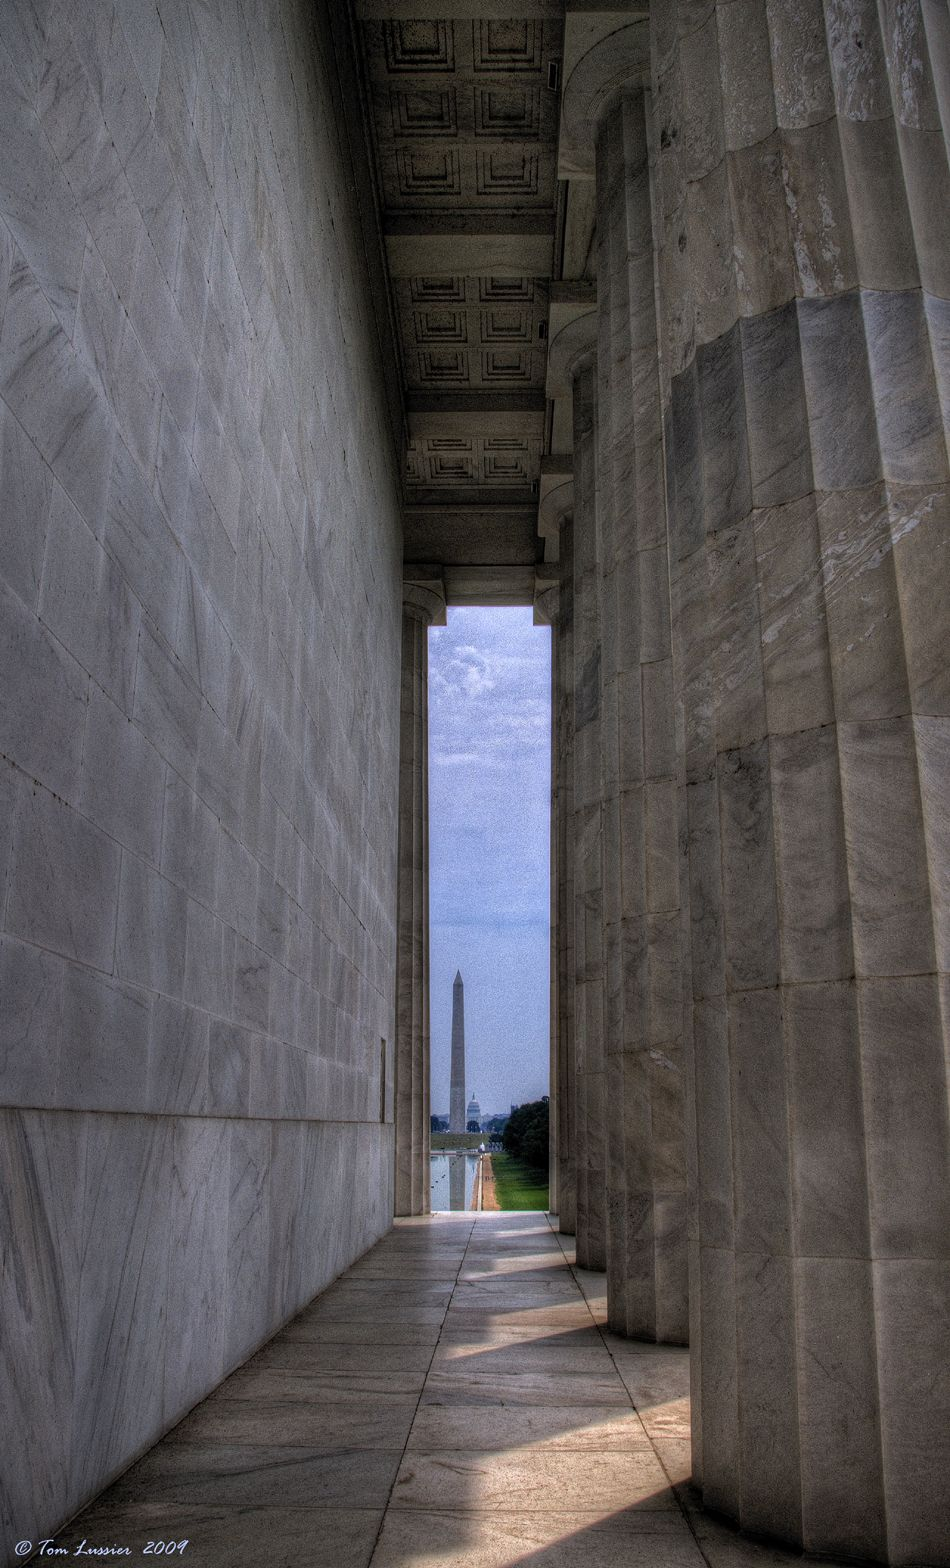 Pillars of Freedom at The Lincoln Memorial